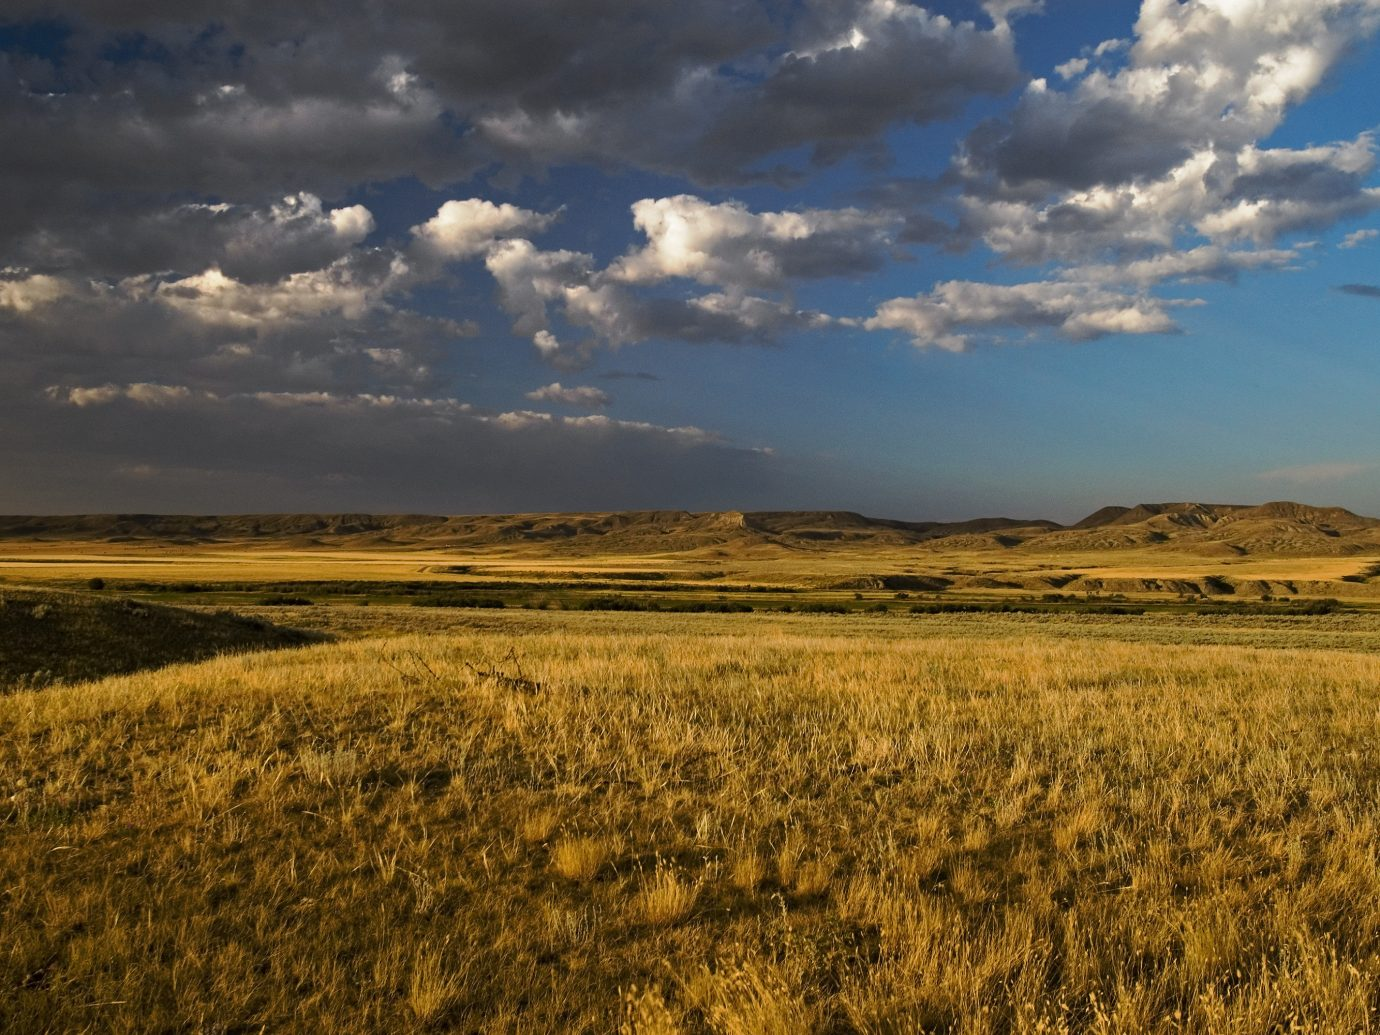 National Parks Outdoors + Adventure Trip Ideas outdoor grass sky field grassland ecosystem prairie plain steppe ecoregion savanna cloud horizon meadow Nature grass family tundra landscape hill shrubland clouds plateau crop sunlight national park pasture meteorological phenomenon computer wallpaper cumulus plant community cloudy